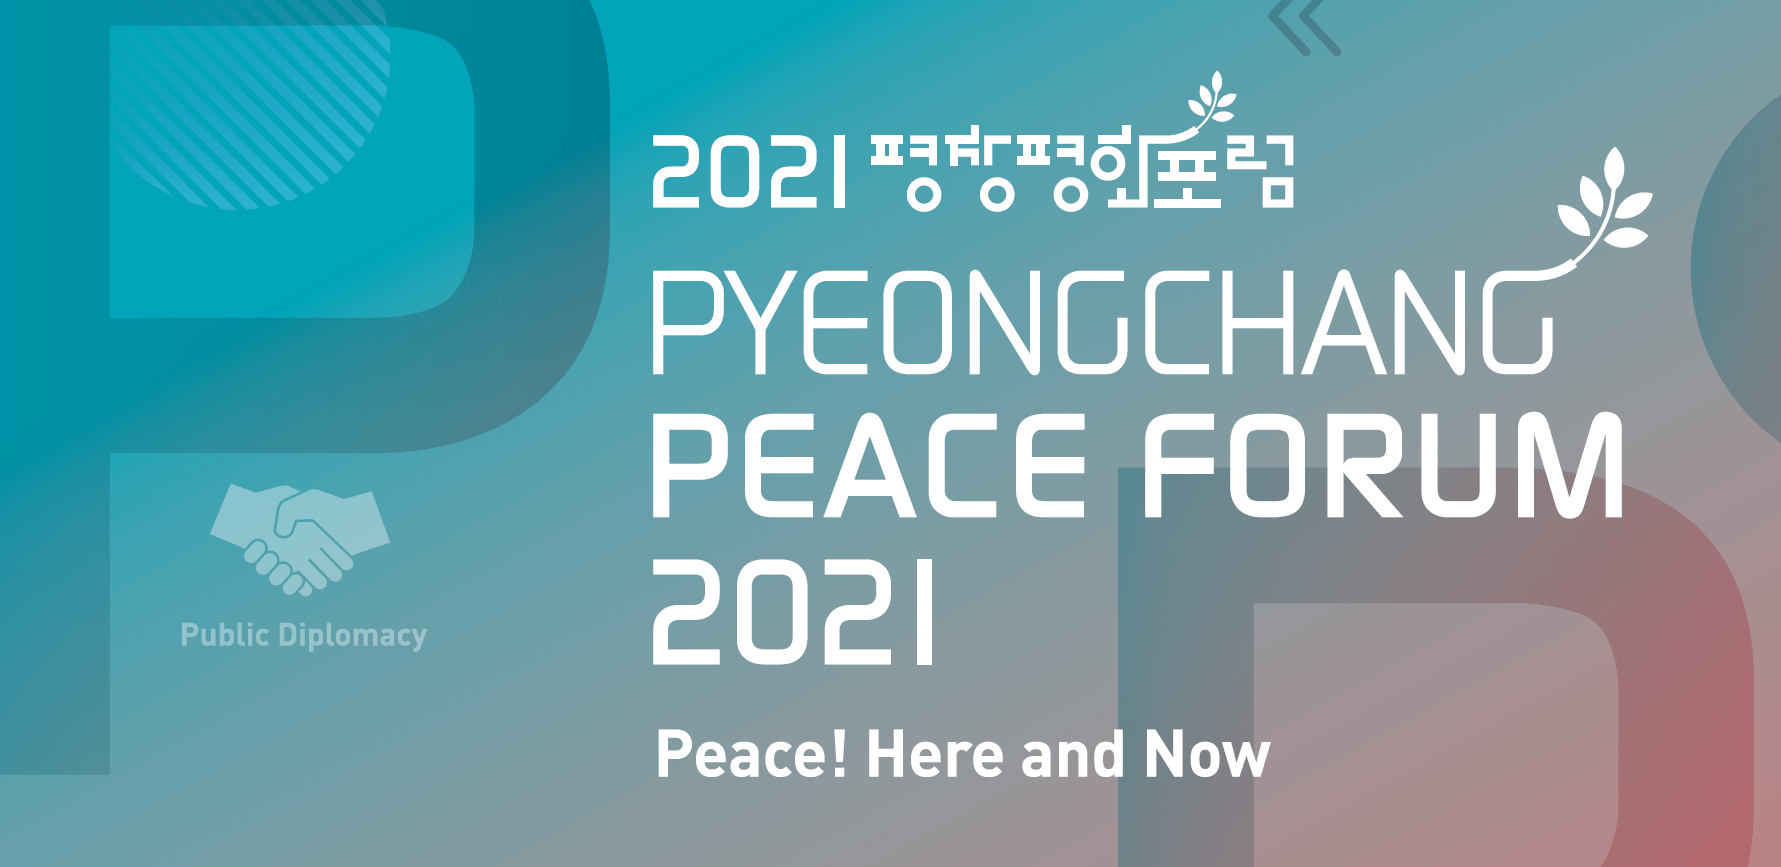 [Plenary Session] Peace Agenda 2045 - Abolish War and Nuclear Weapons